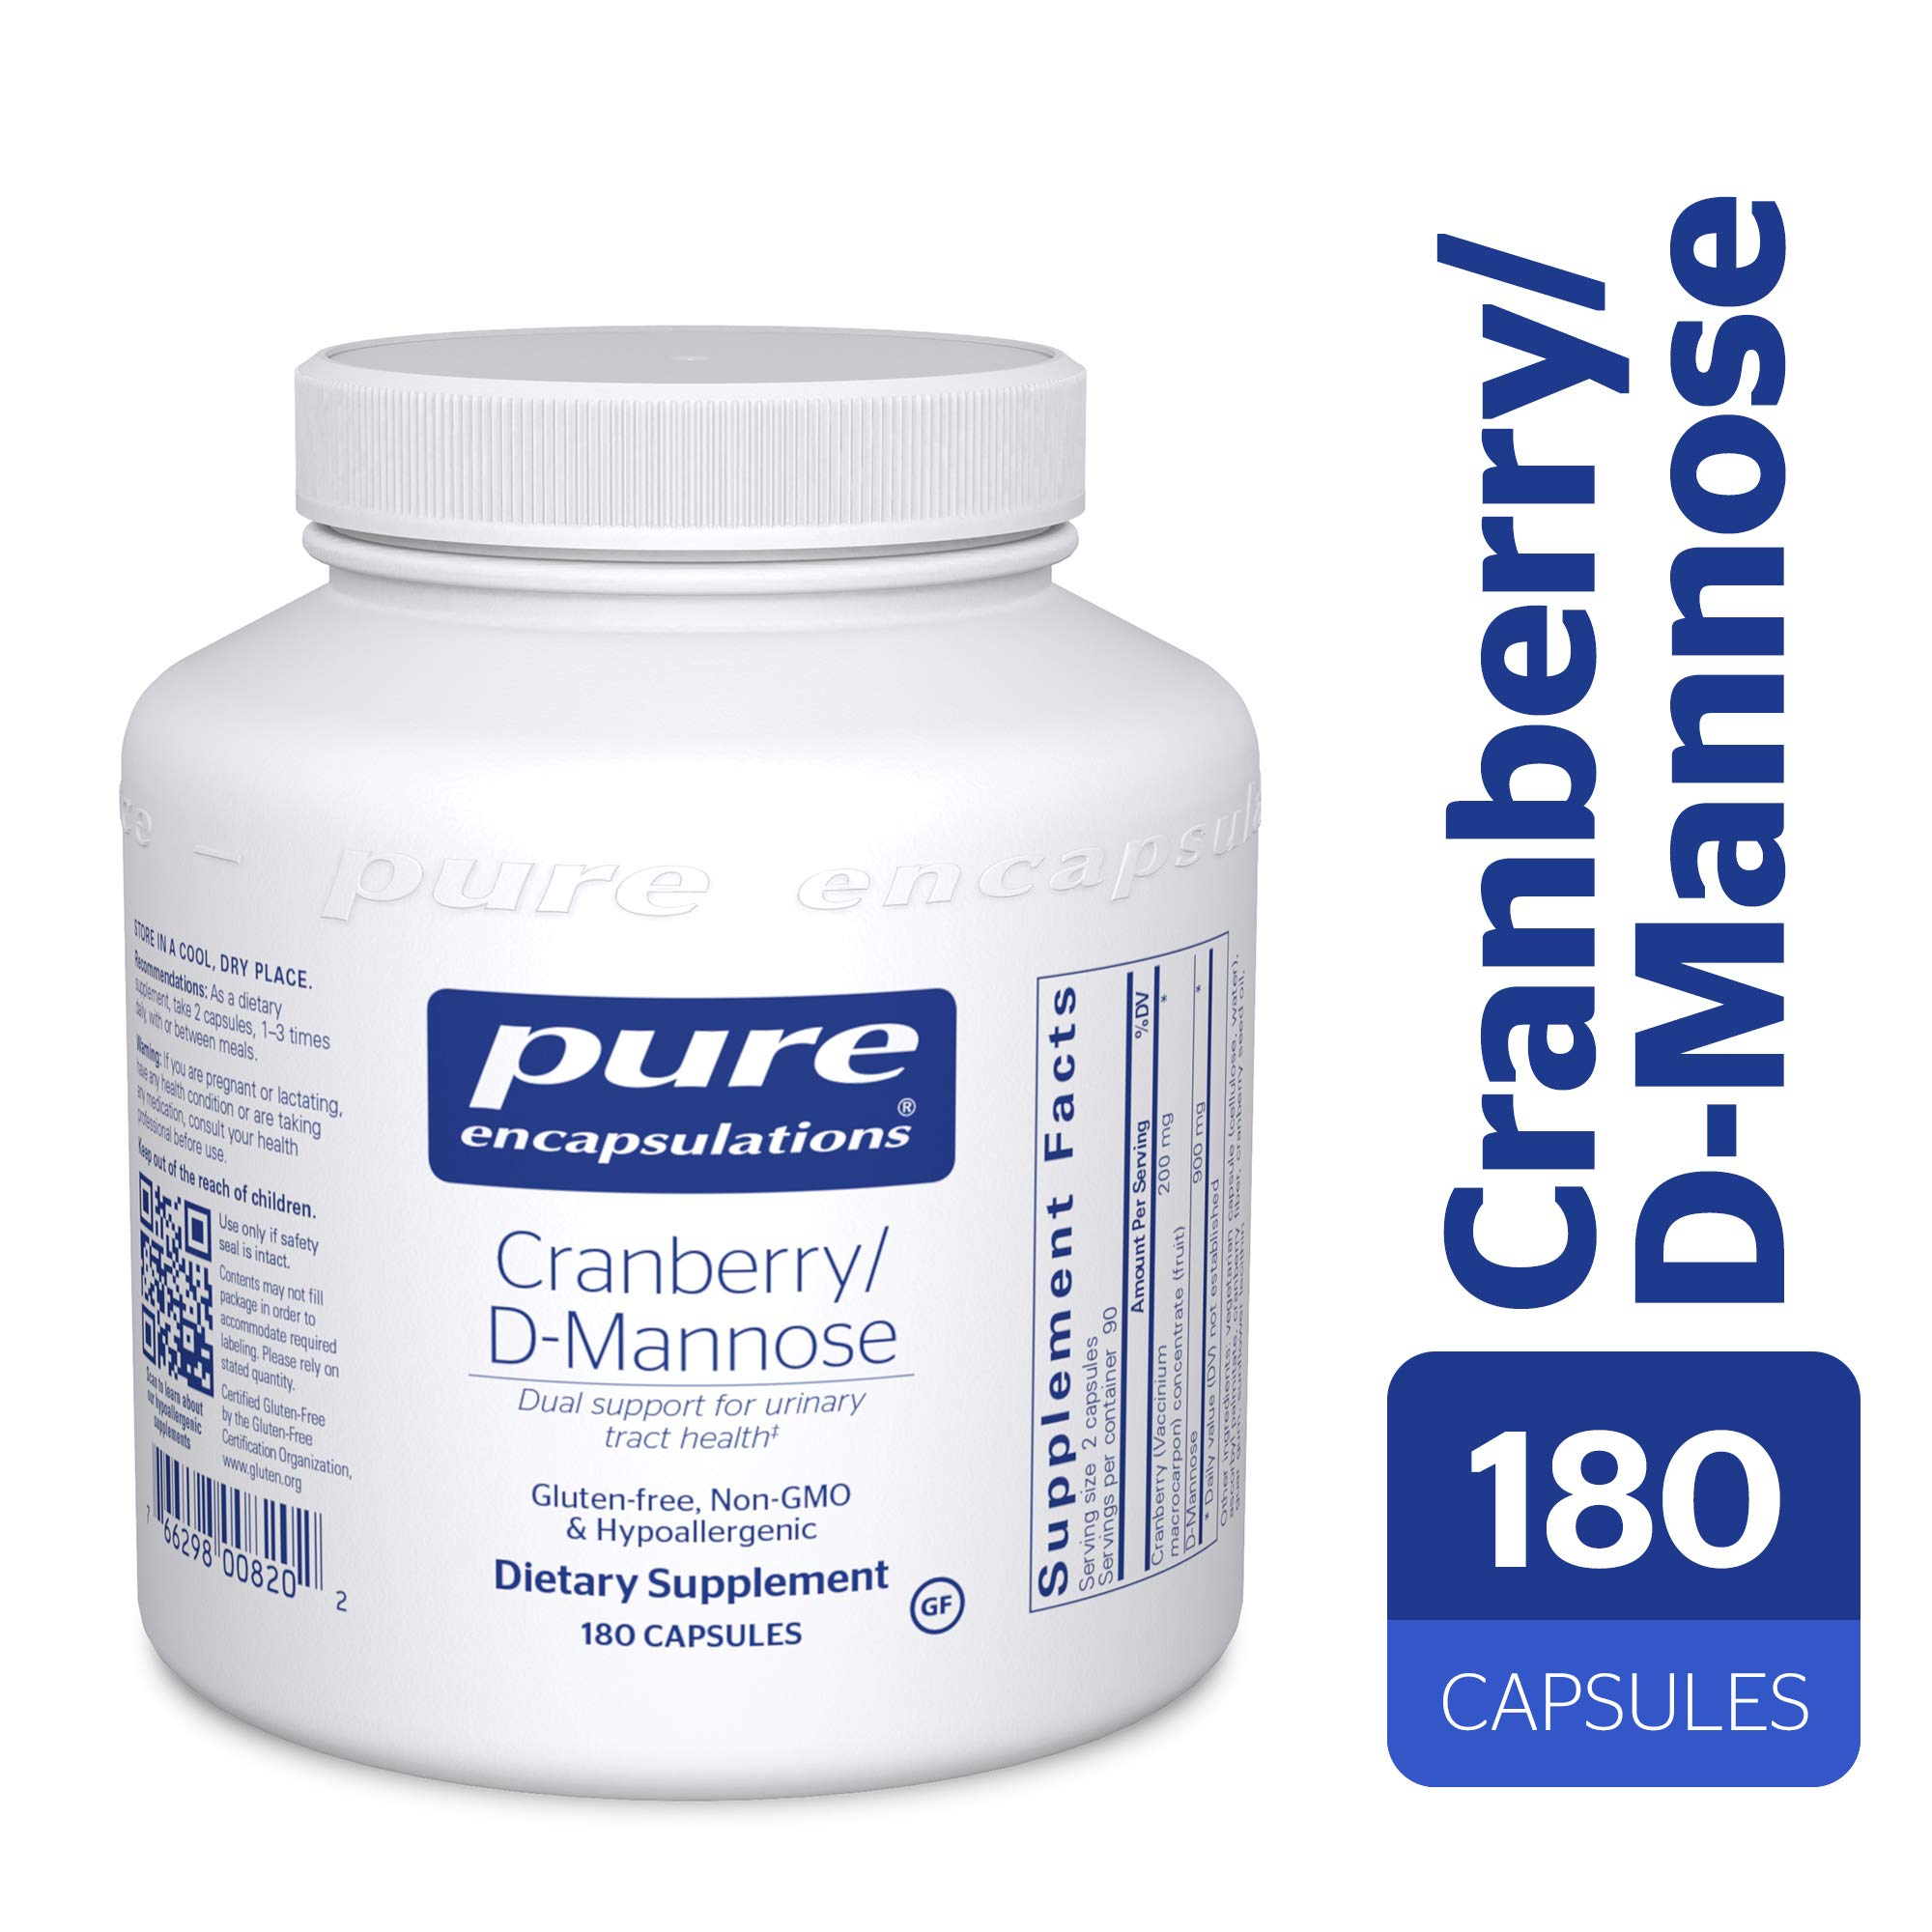 Pure Encapsulations - Cranberry/d-Mannose - Hypoallergenic Supplement to Support Urinary Tract Health* - 180 Capsules